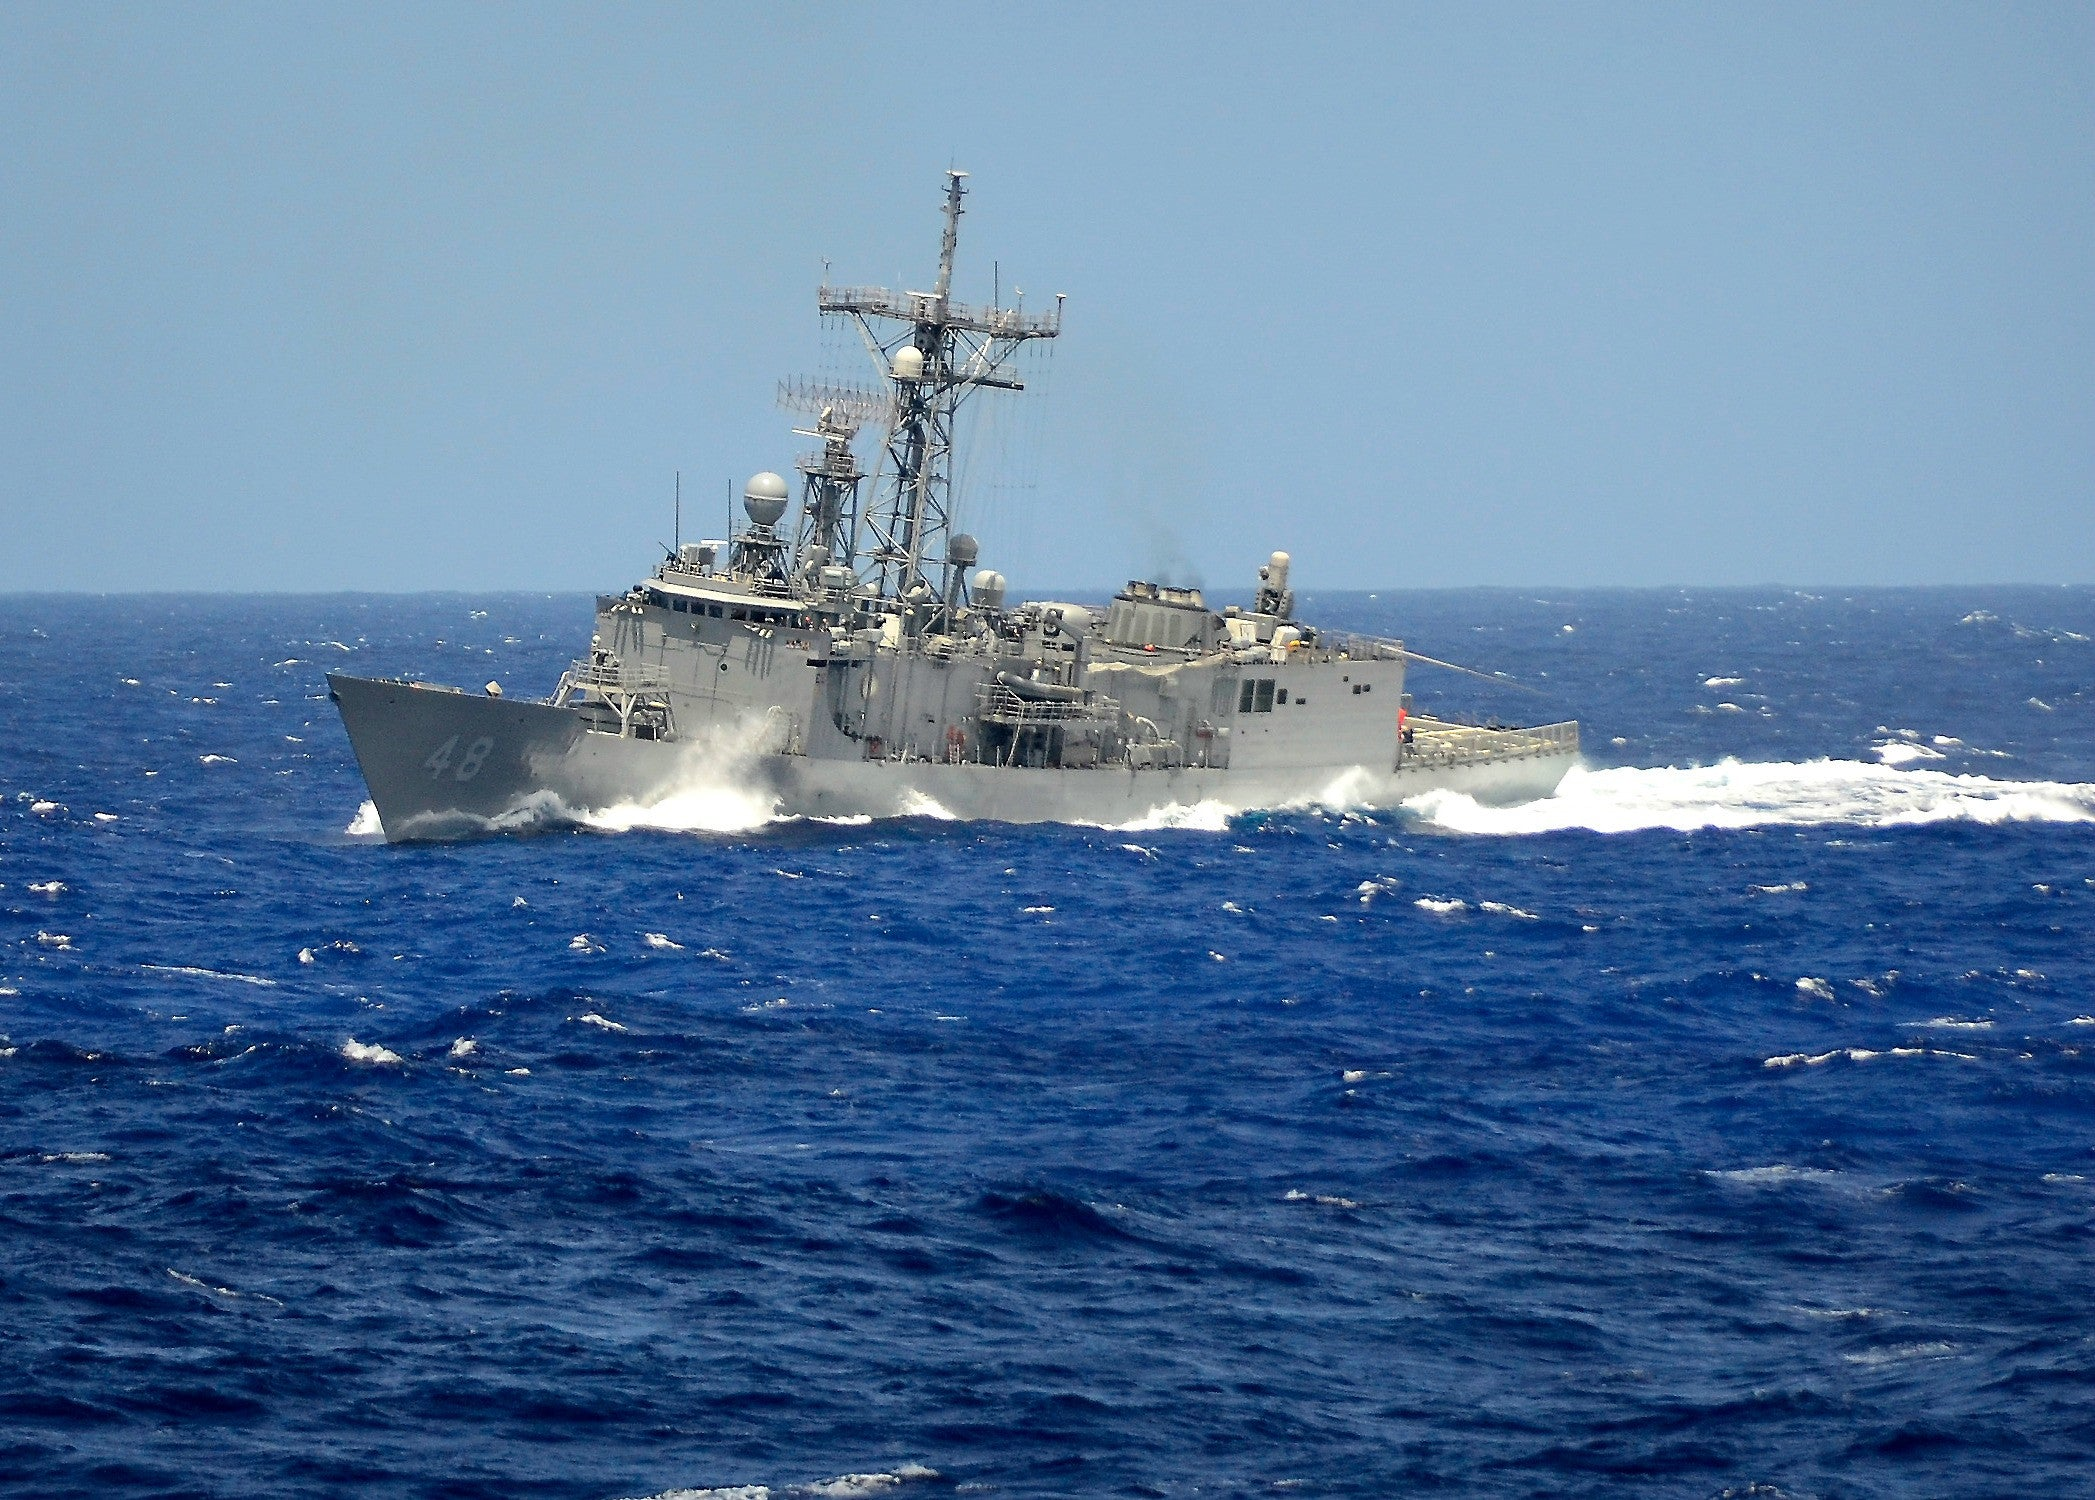 "USS Vendegrift FFG-48 Pacific Ocean March 31, 2012 - 5 x 7"" Photograph"